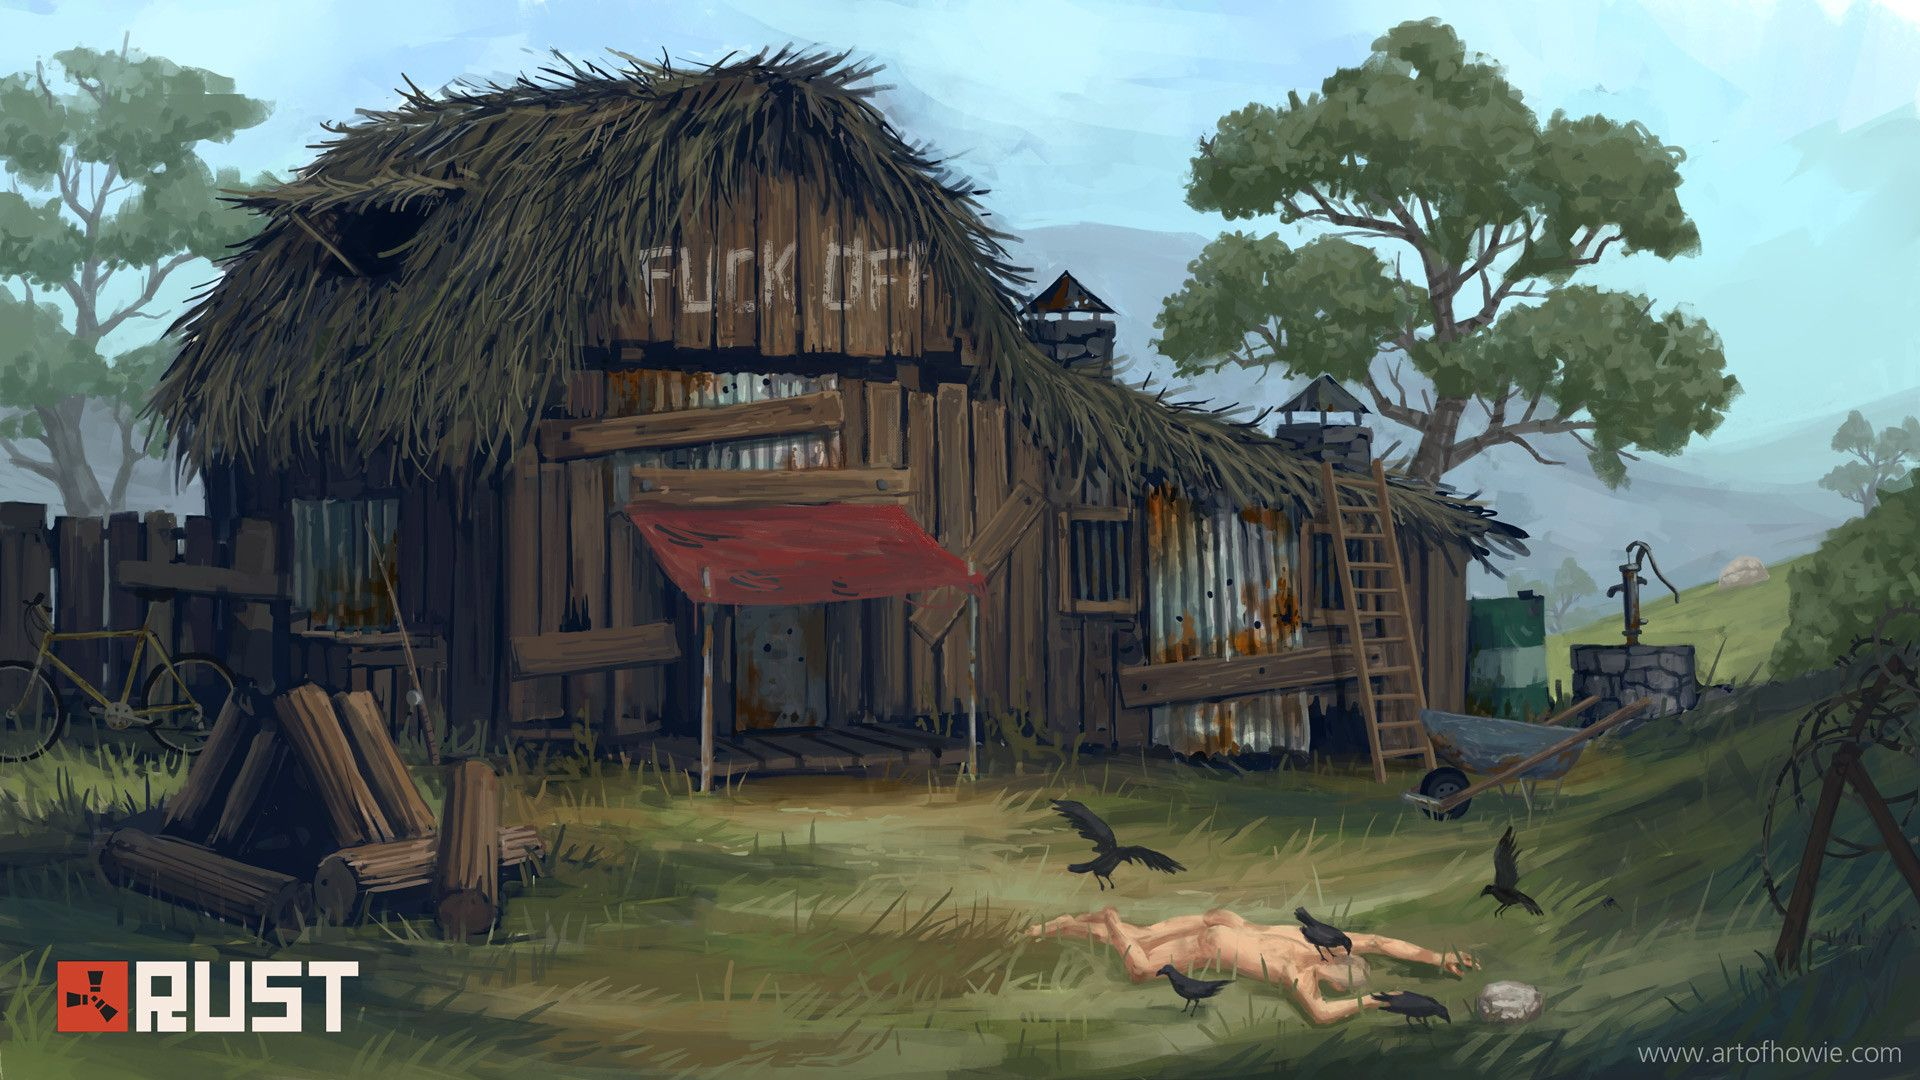 Rust By Facepunch Studios Steam Game Survival Game Artwork